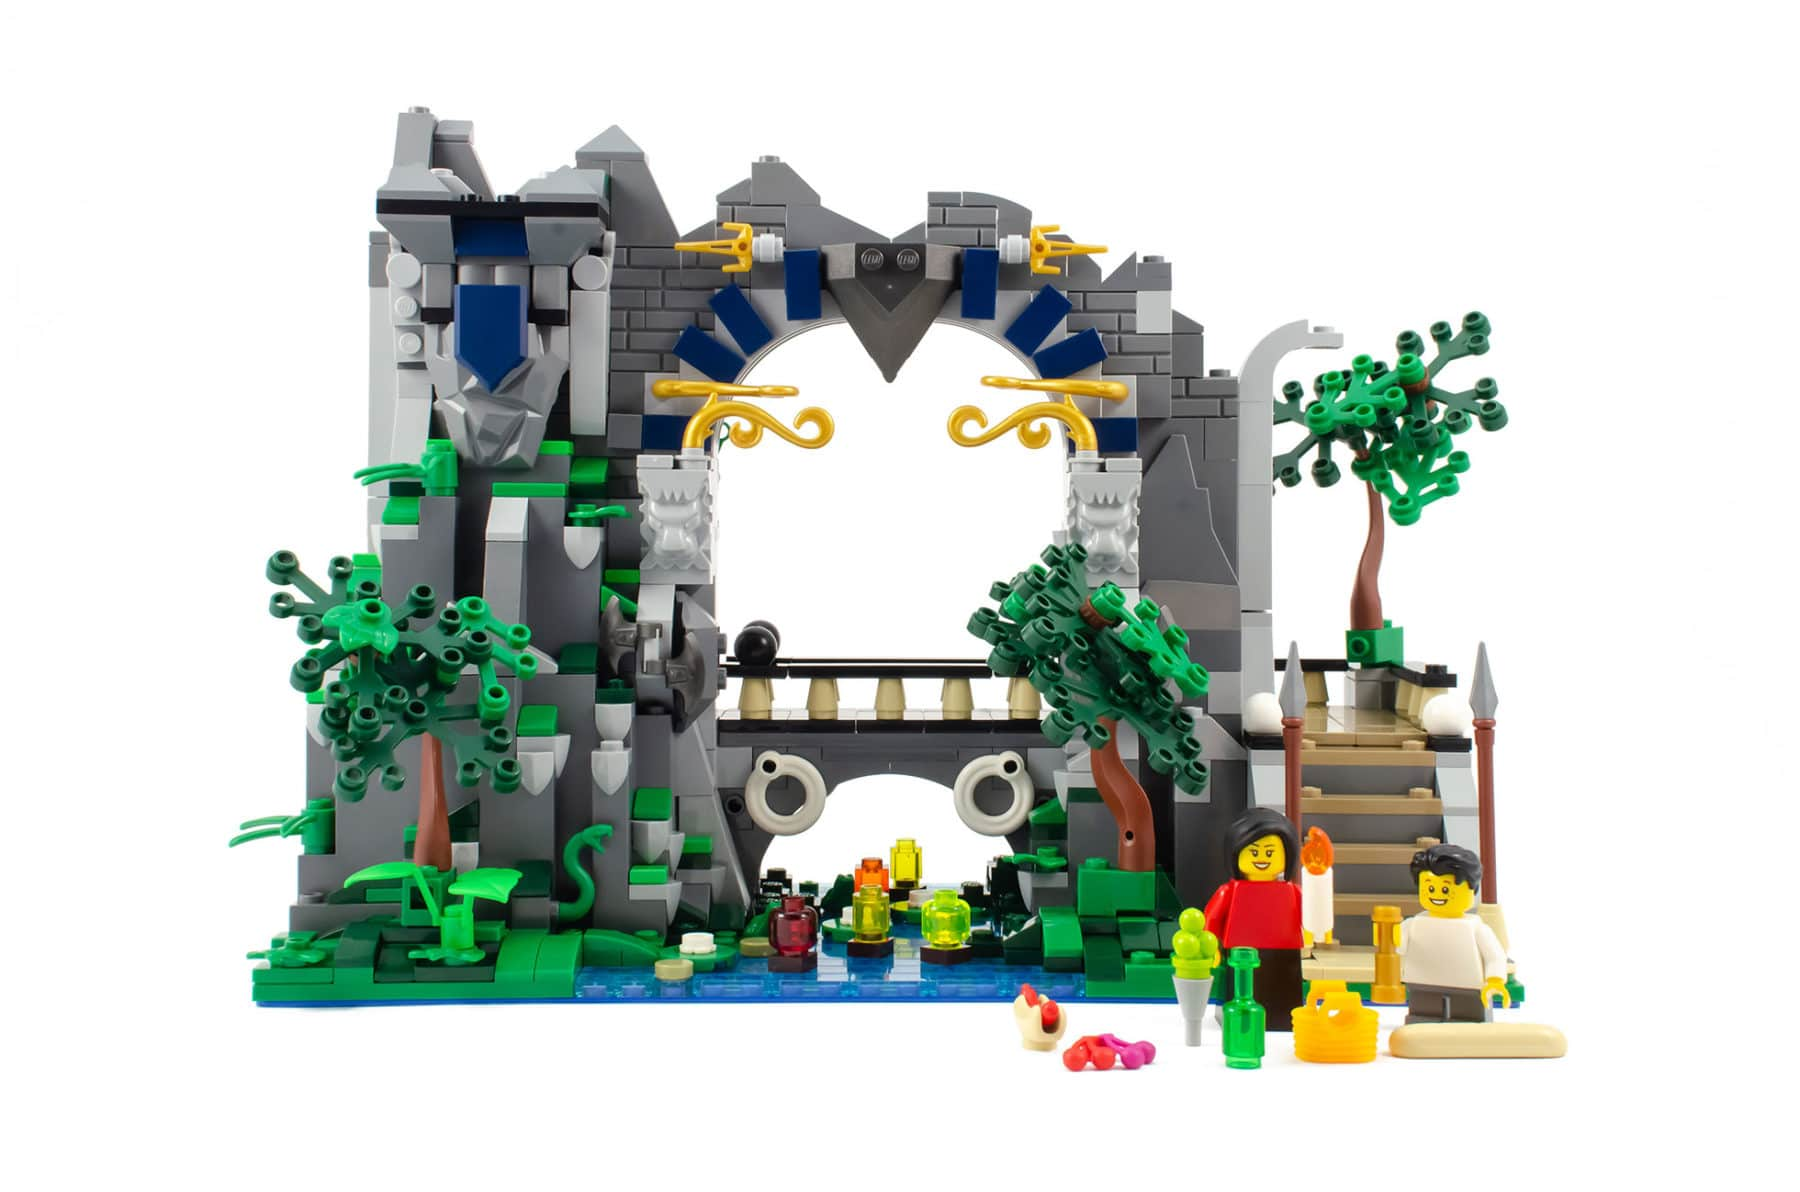 Bricklink AFOL Designer Program: Clovershire Castle